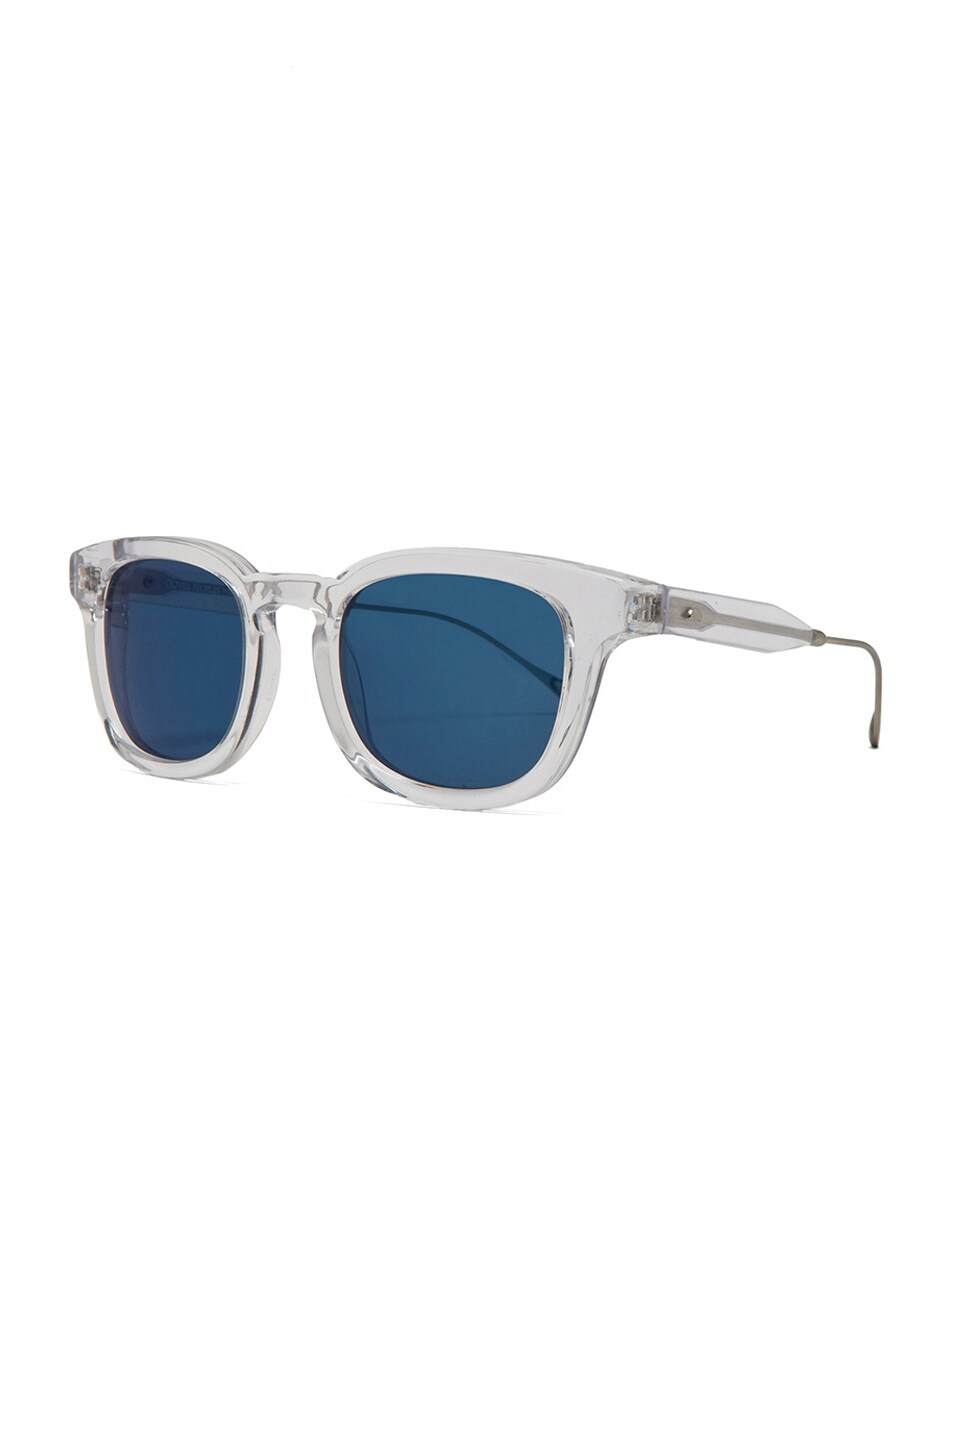 Image 2 of Oliver Peoples WEST Cabrillo Polarized Sunglasses in Crystal & Malibu Mirror